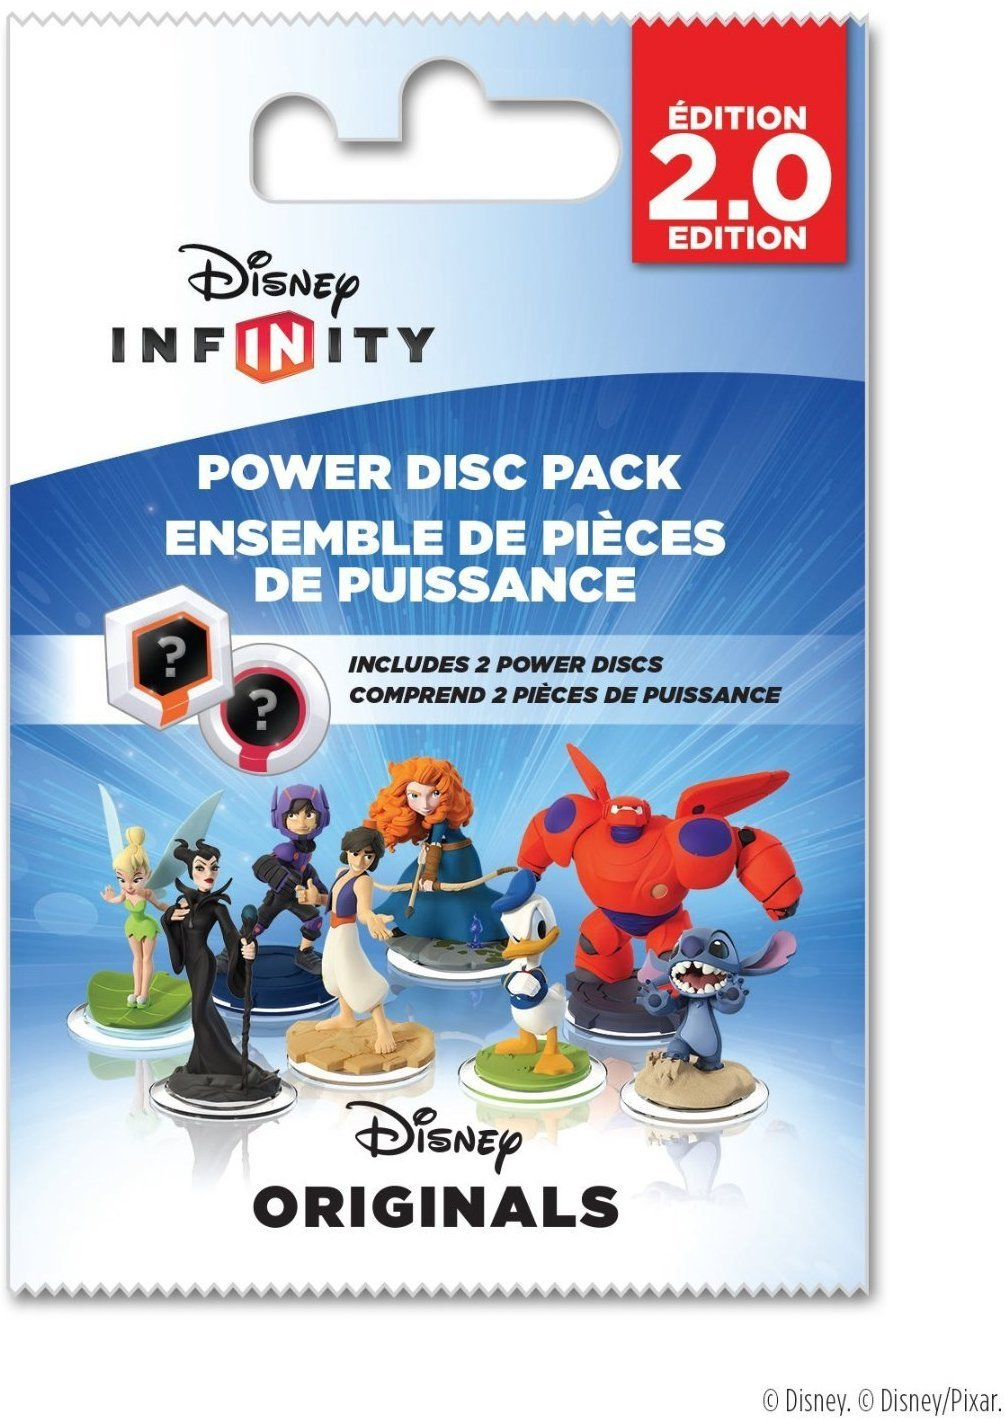 (Lot of 4) Disney Infinity (2.0 Edition): Power Disc Pack